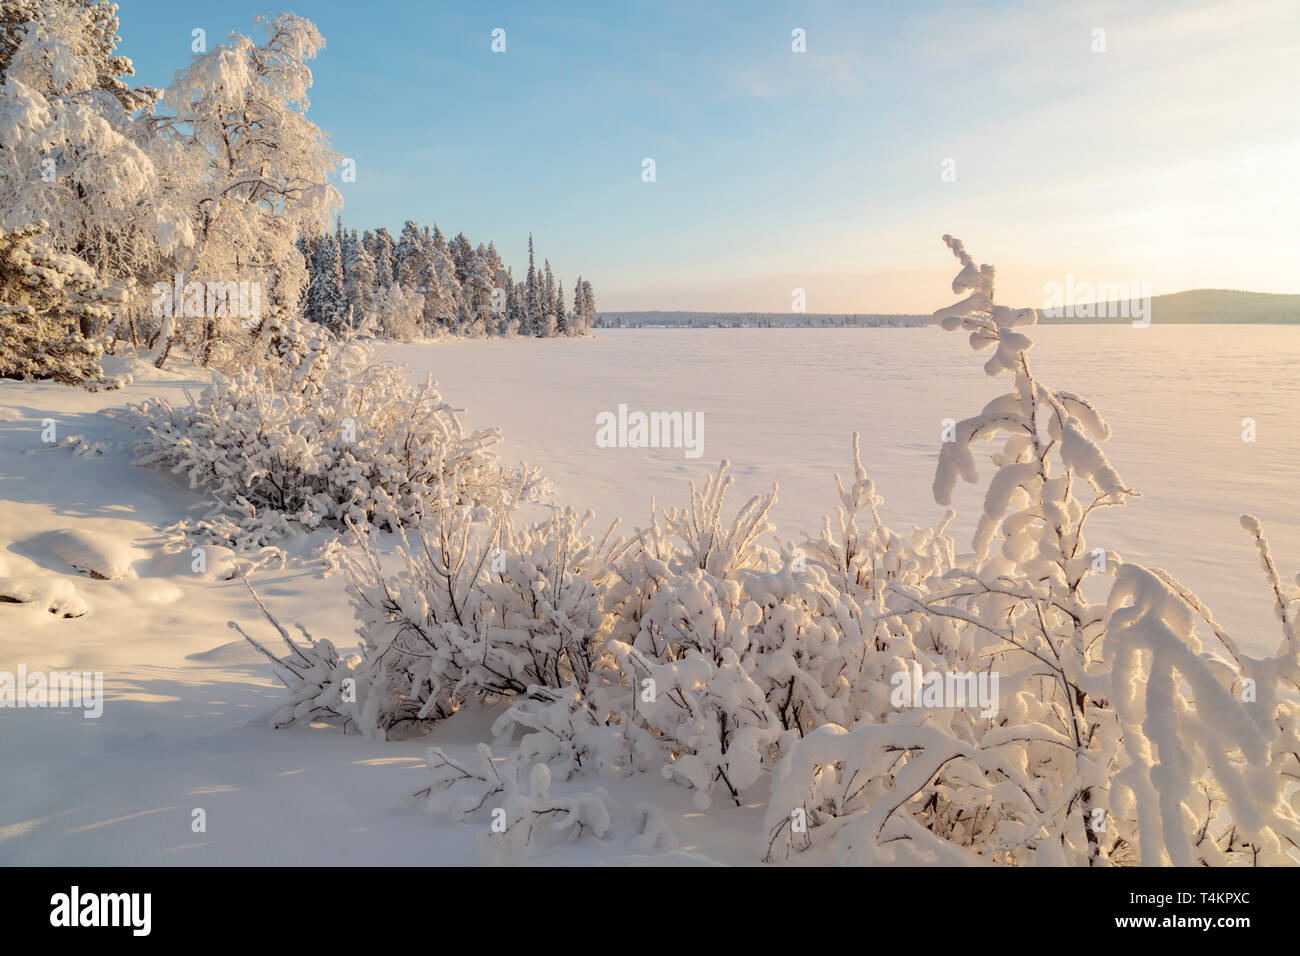 Landscape in winter season, nice warm afternoon light,  snowy trees,  mountain in background, Gällivare county, Swedish Lapland, Sweden Stock Photo